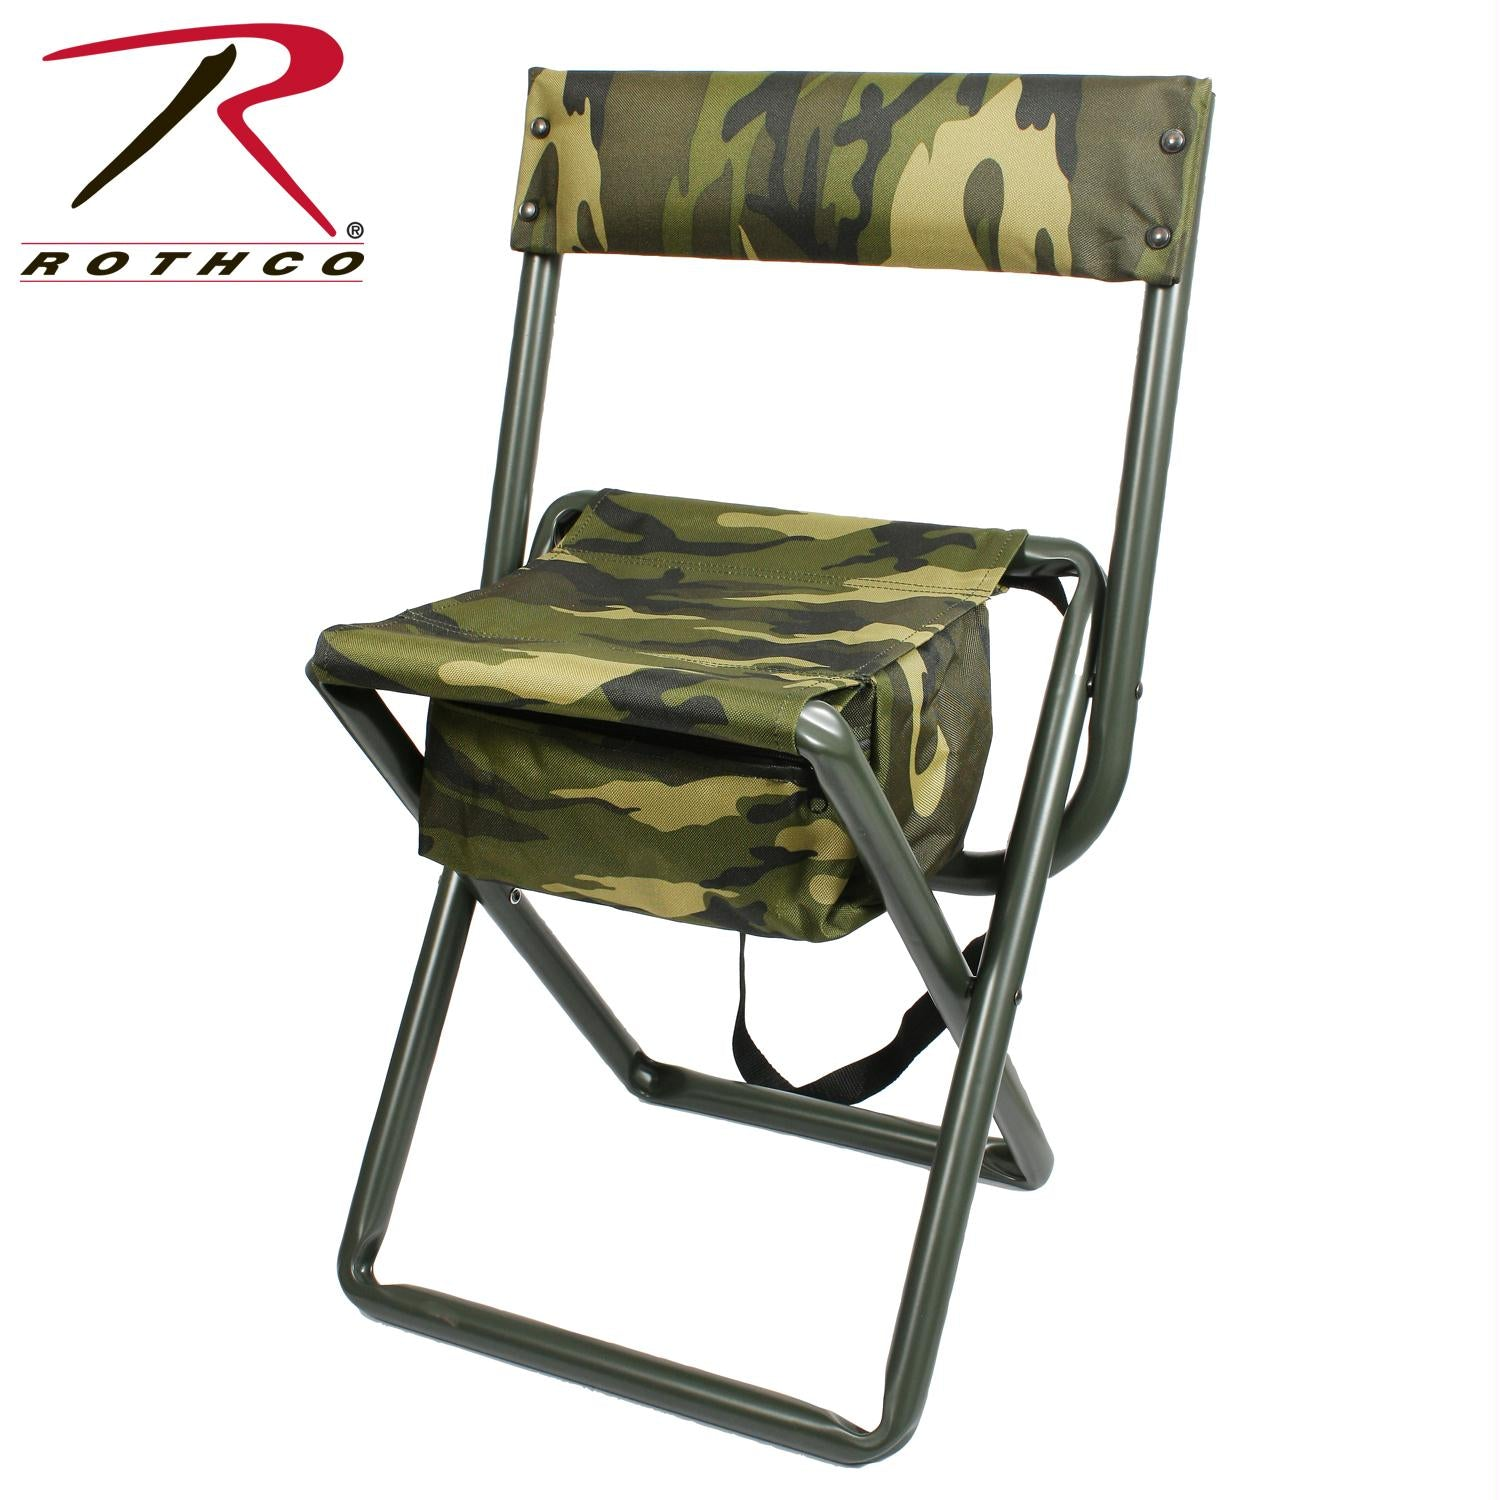 Rothco Deluxe Camo Stool w/ Pouch